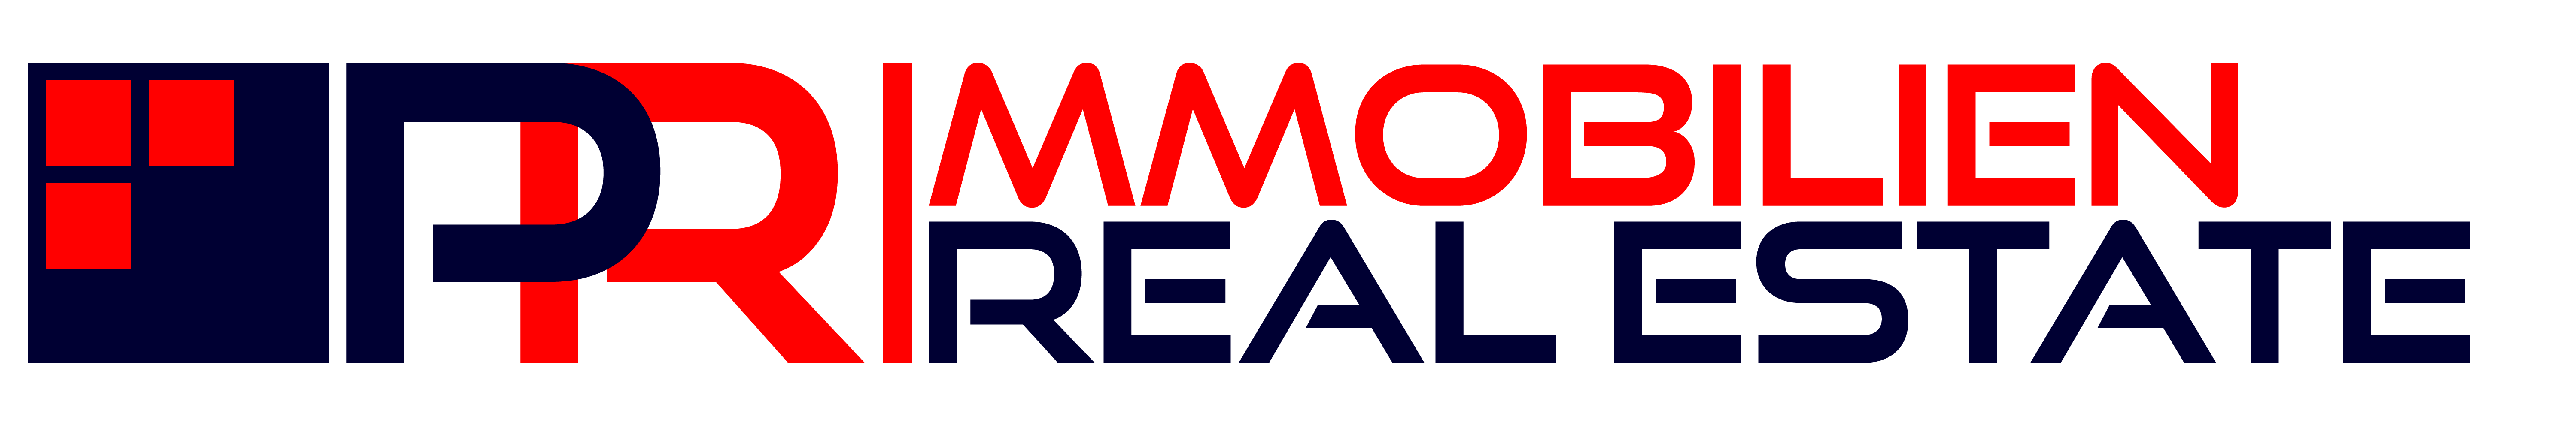 PR-IMMOBILIEN / REAL ESTATE